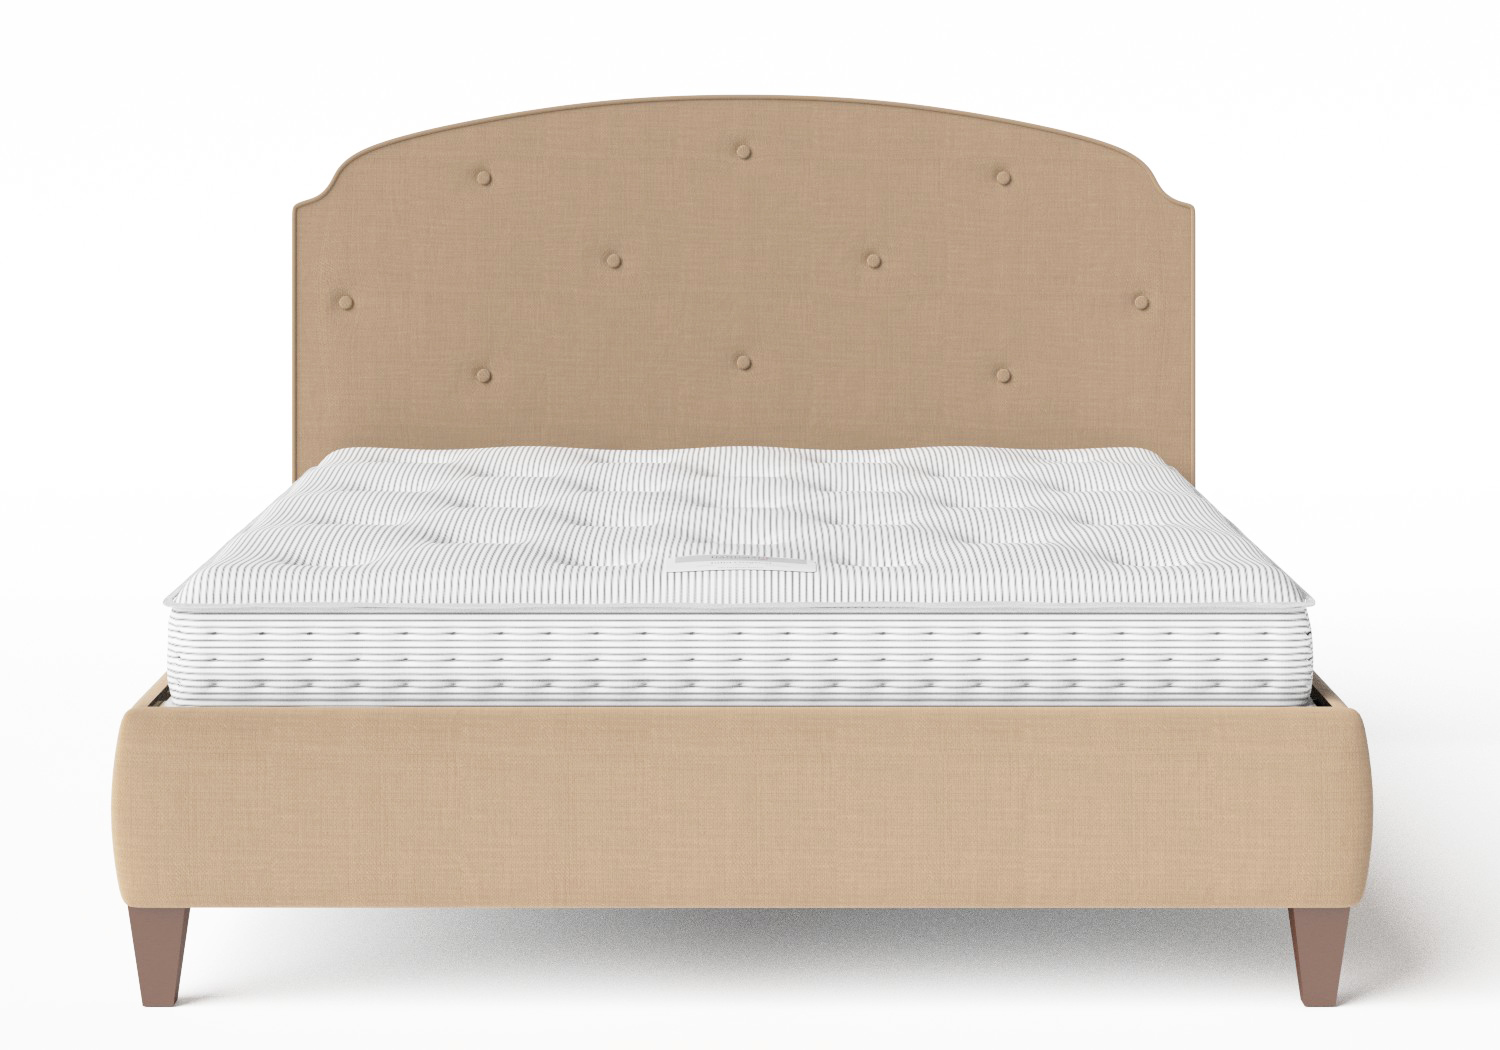 Lide Upholstered Bed in Straw fabric with buttoning shown with Juno 1 mattress